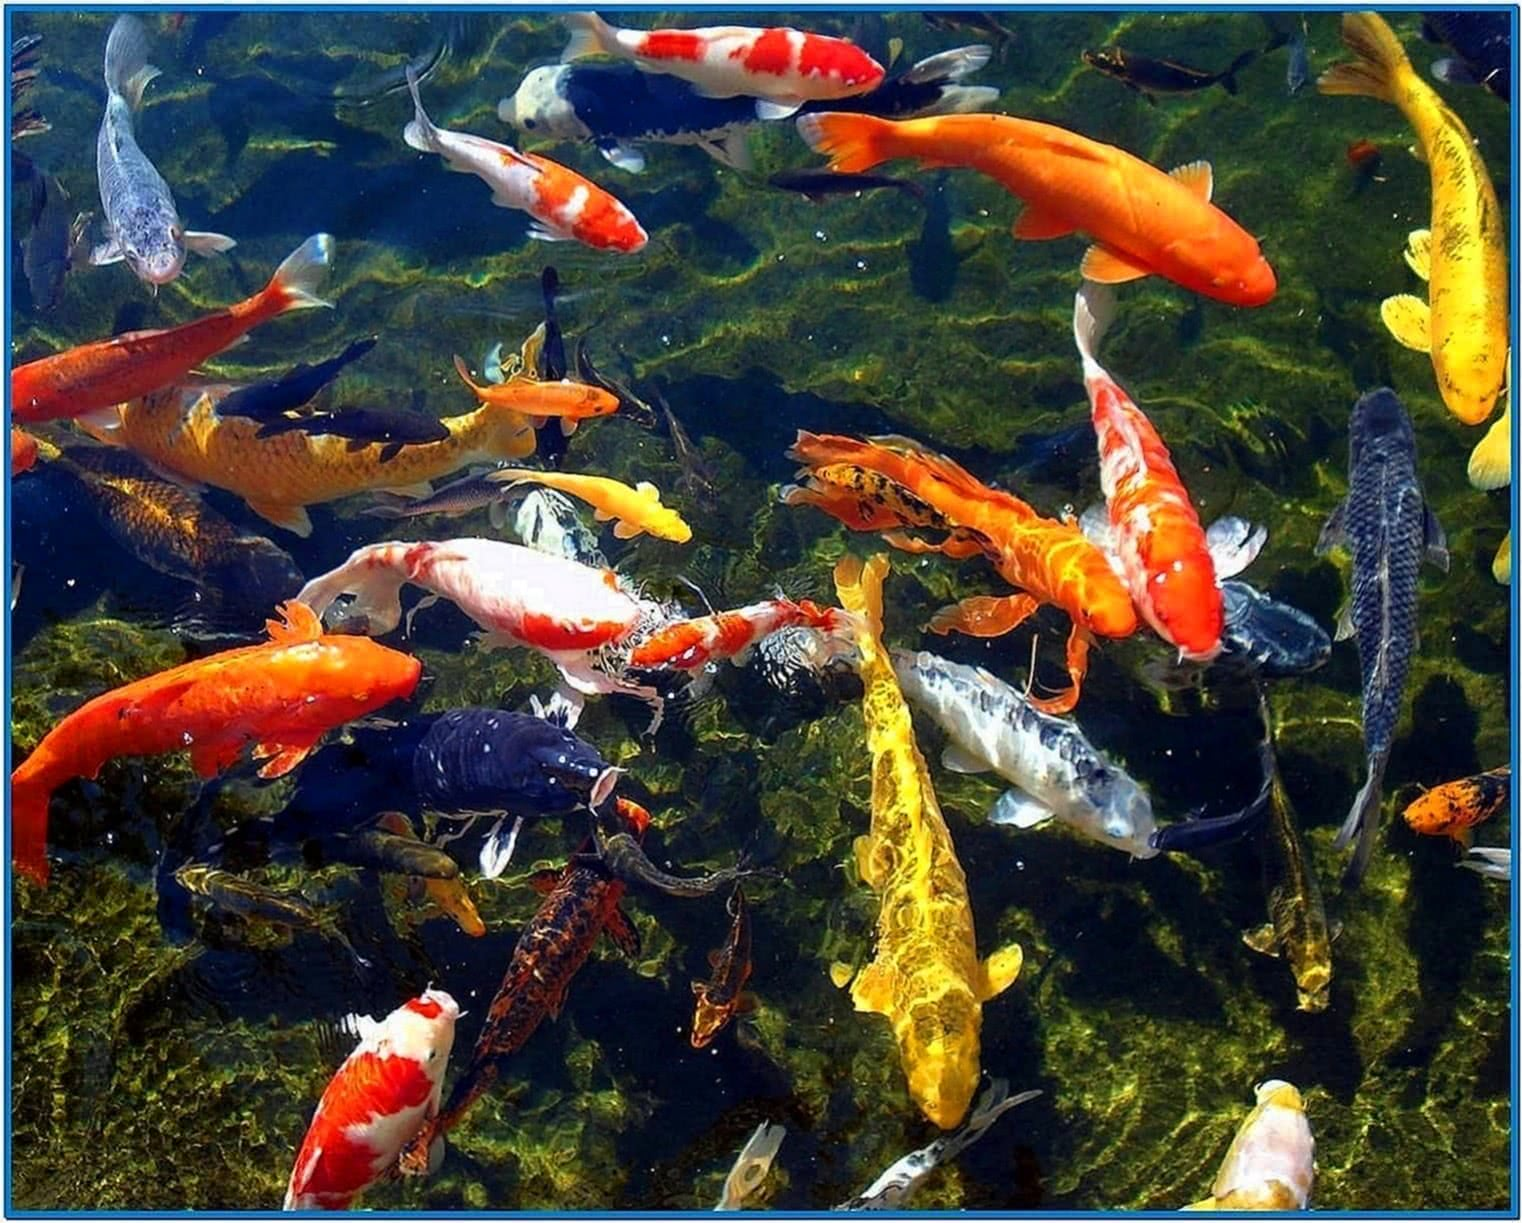 Koi fish pond screensaver download free for Koi pond pics